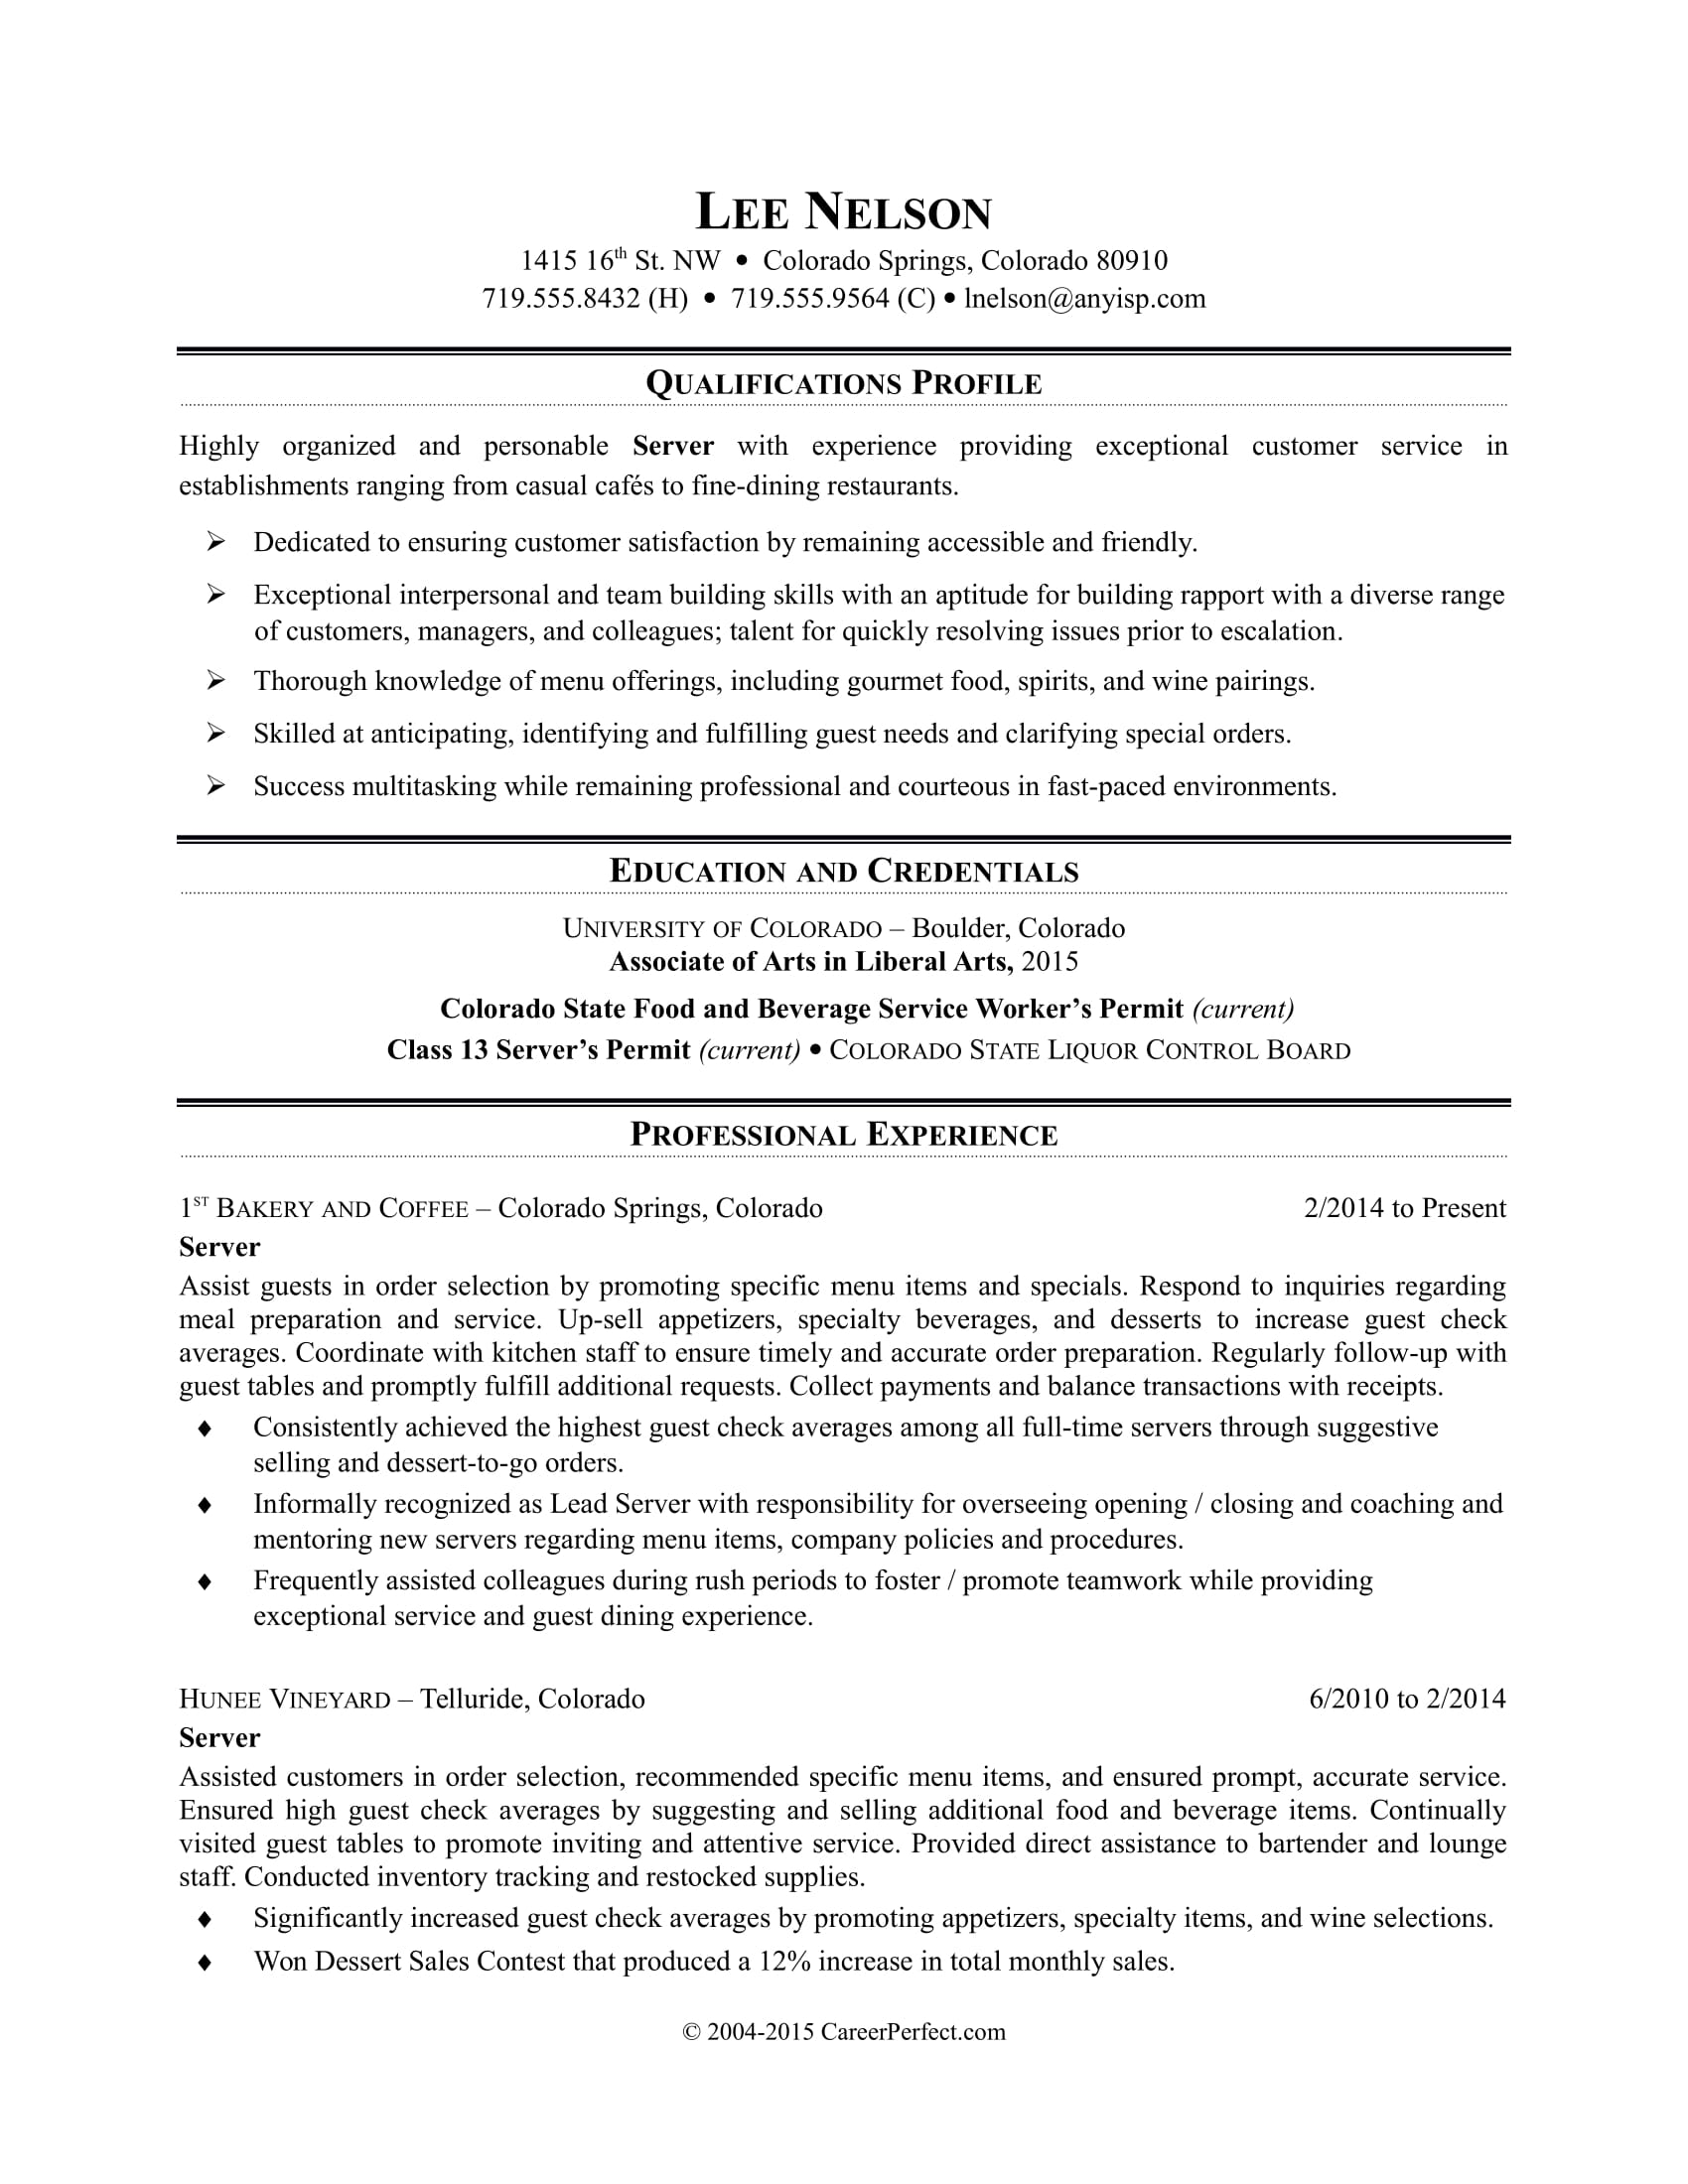 sample resume for a restaurant server - Example Resume